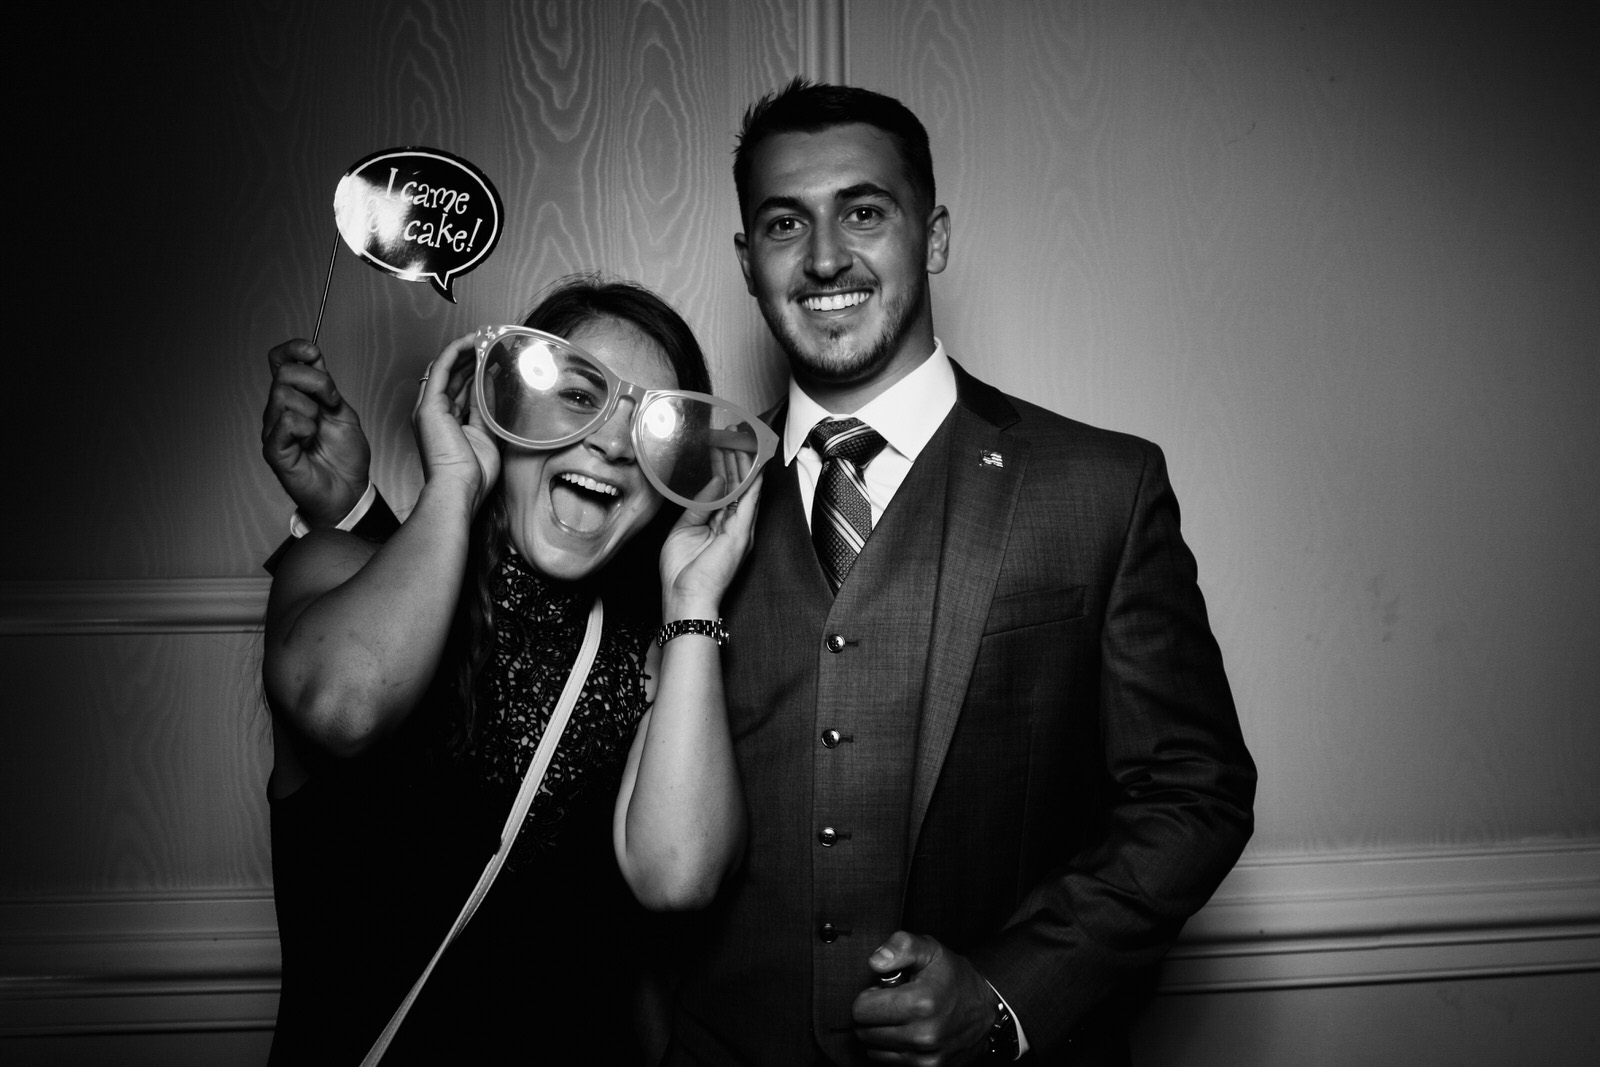 Ashley-Tyrone-Wedding-Photo-Booth-Presidential_Norristown-Wedding-3.jpg